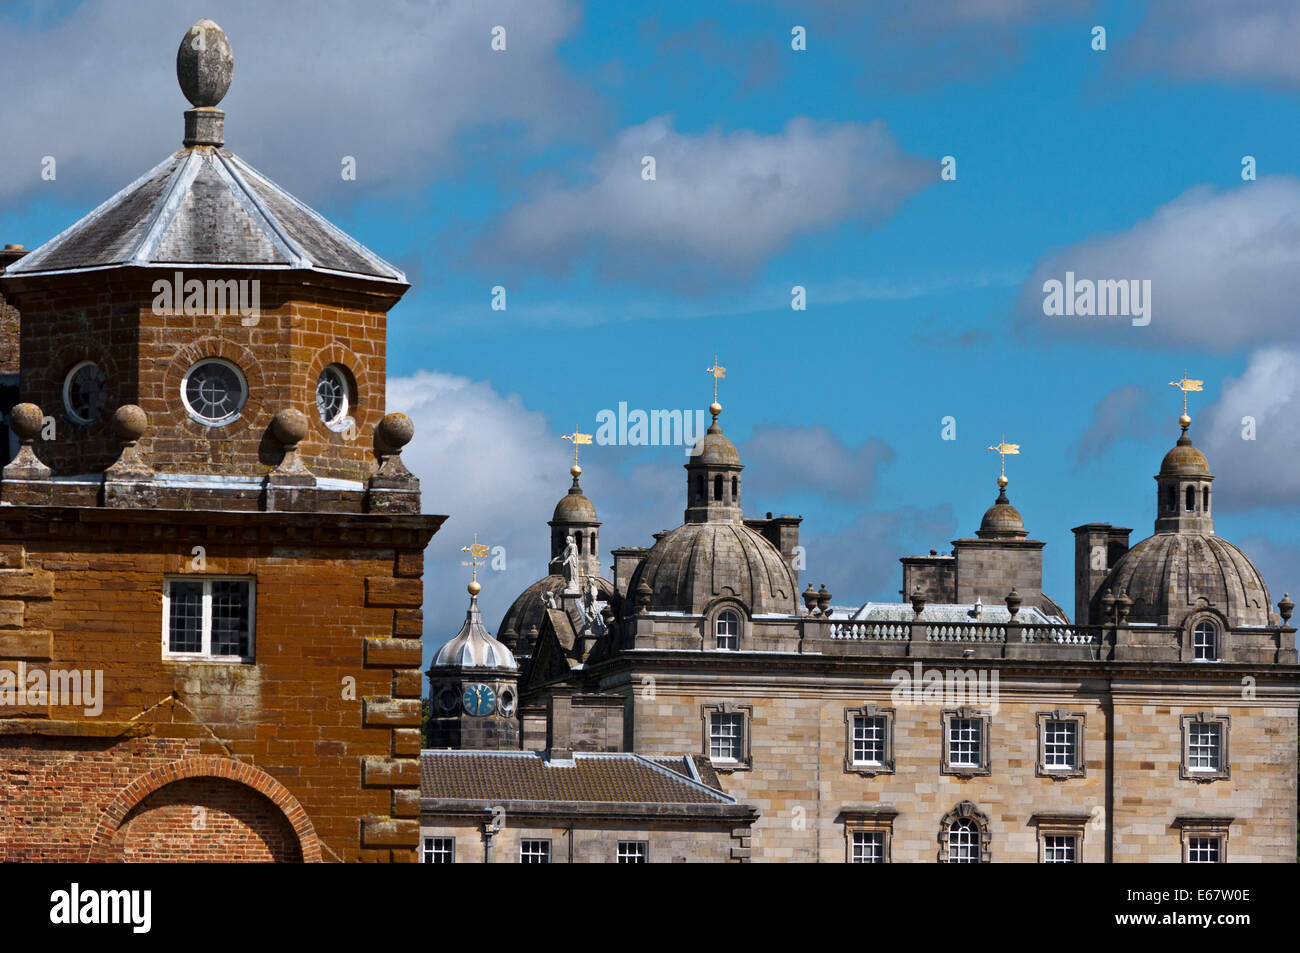 Houghton Hall Stately home - Stock Image